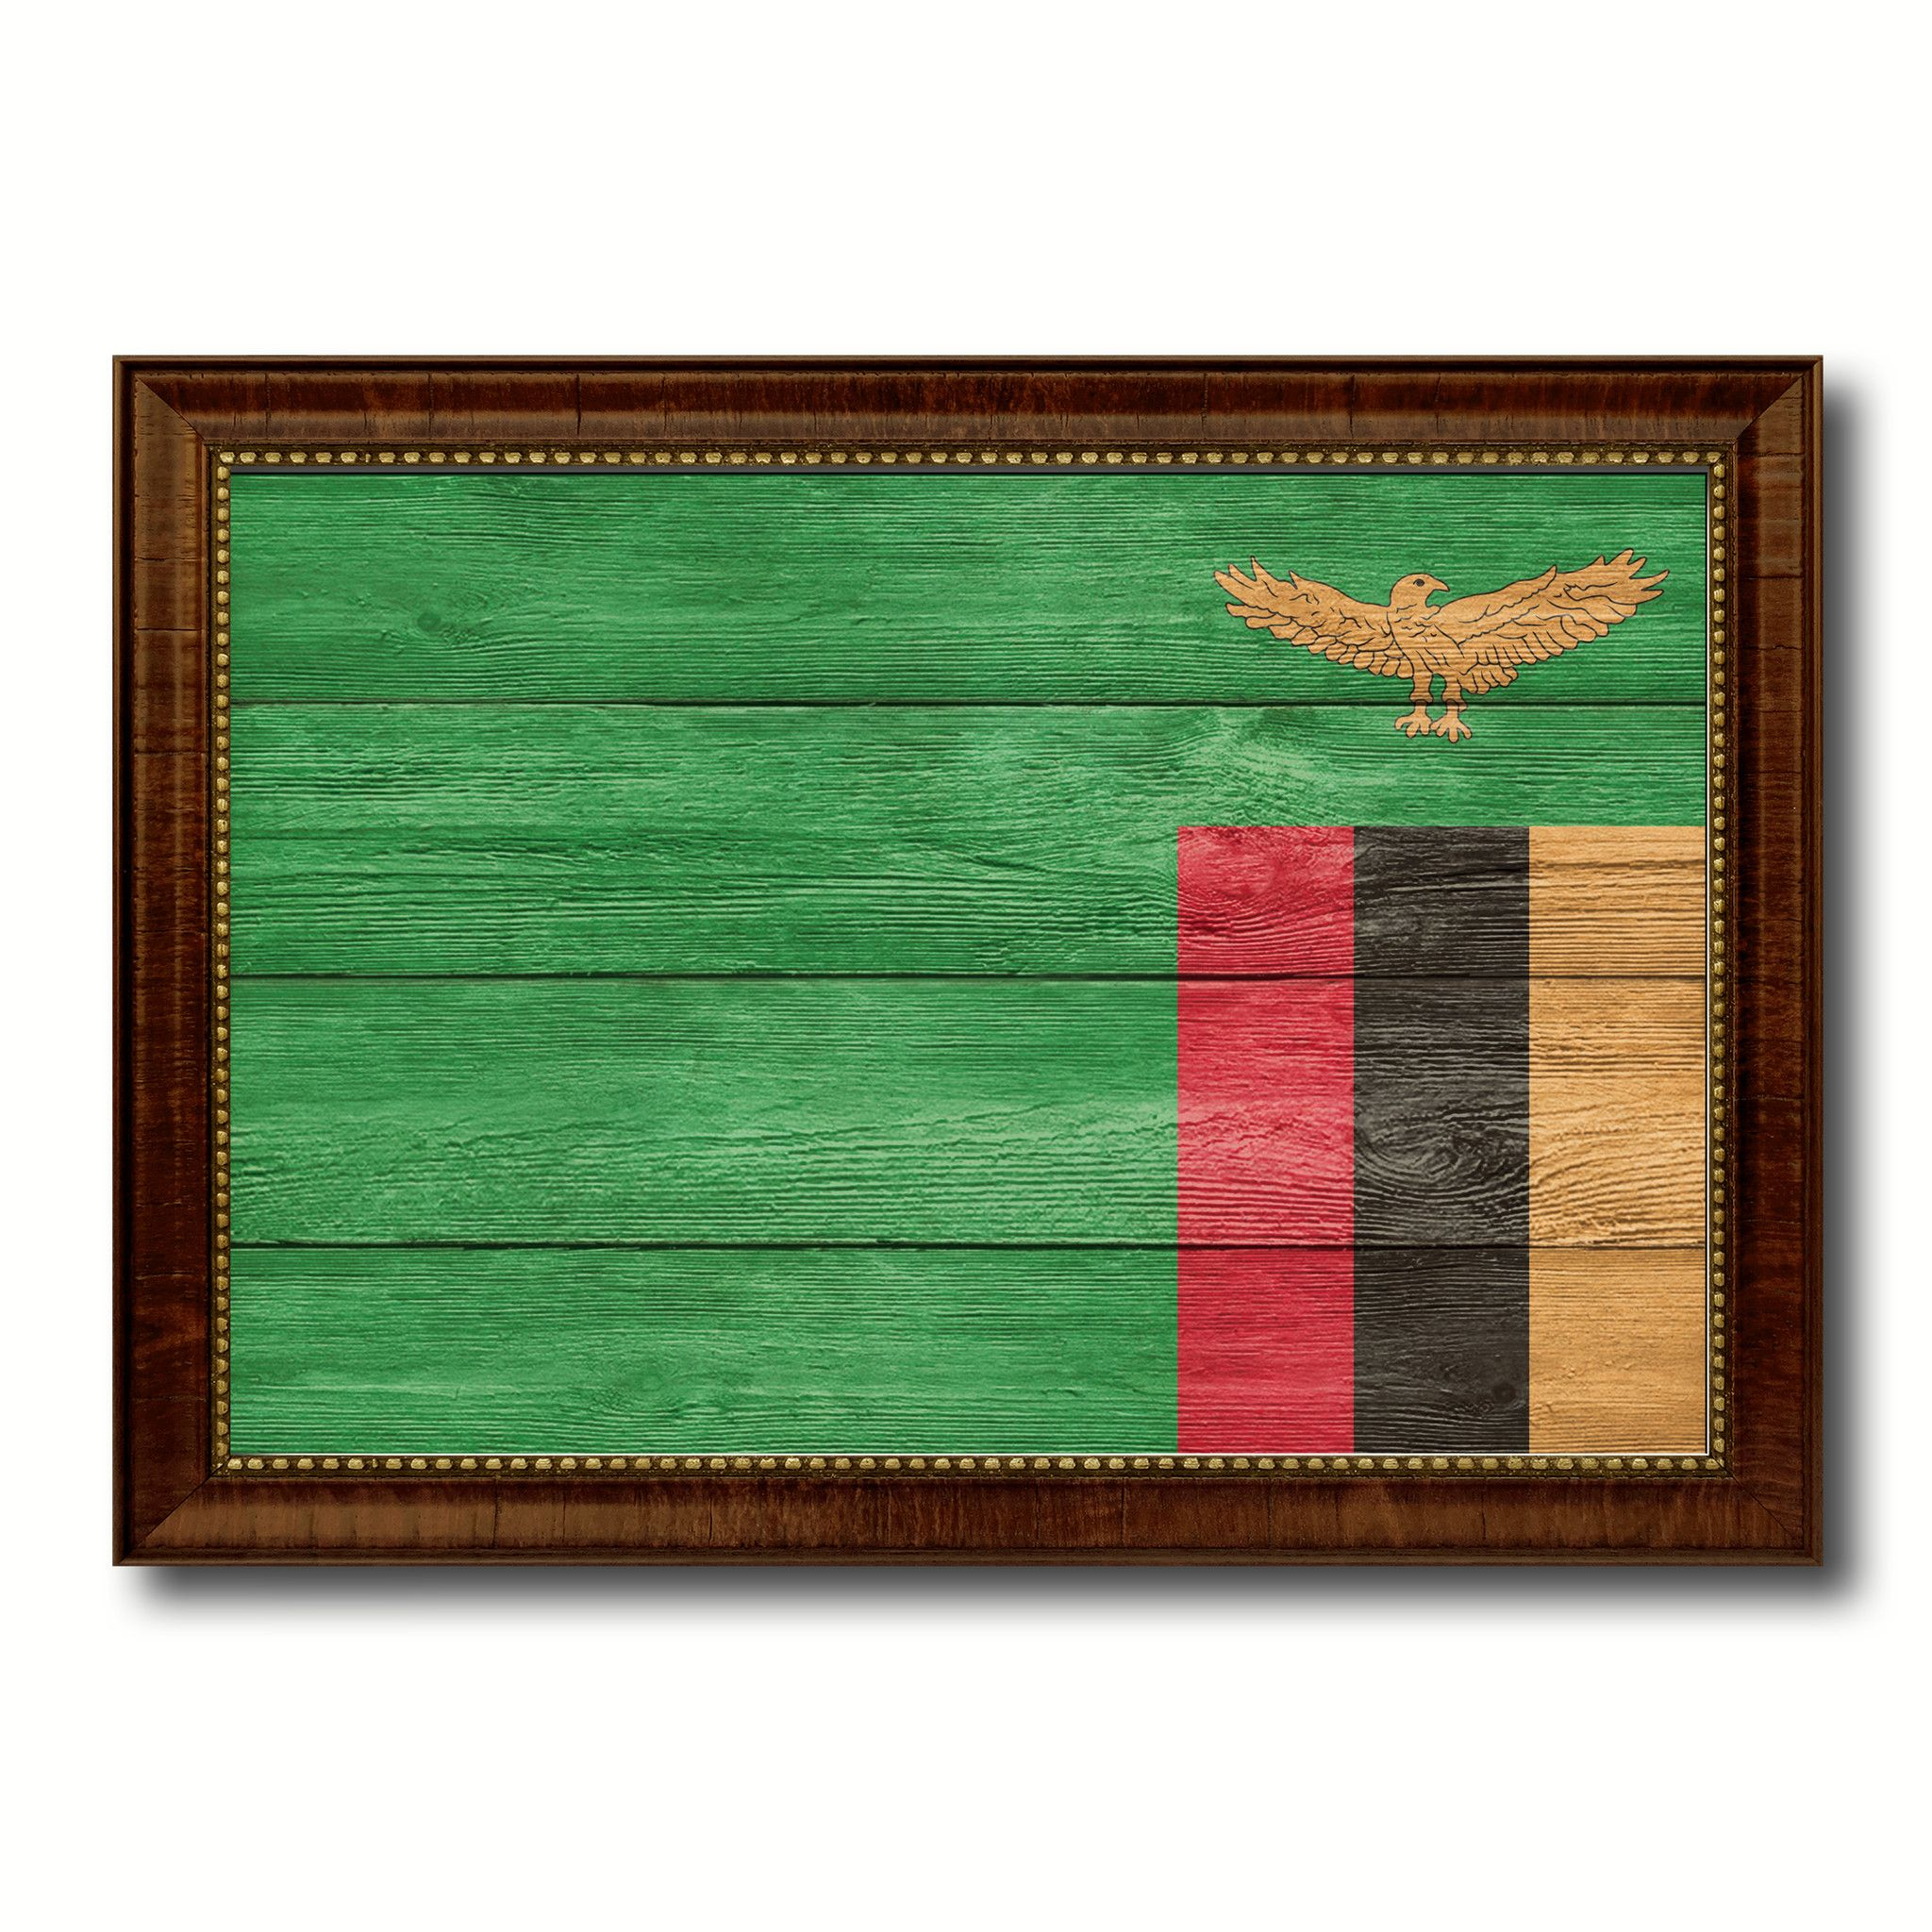 Home interiors and gifts framed art - Zambia Country Flag Texture Canvas Print With Brown Custom Picture Frame Home Decor Gift Ideas Wall Art Decoration